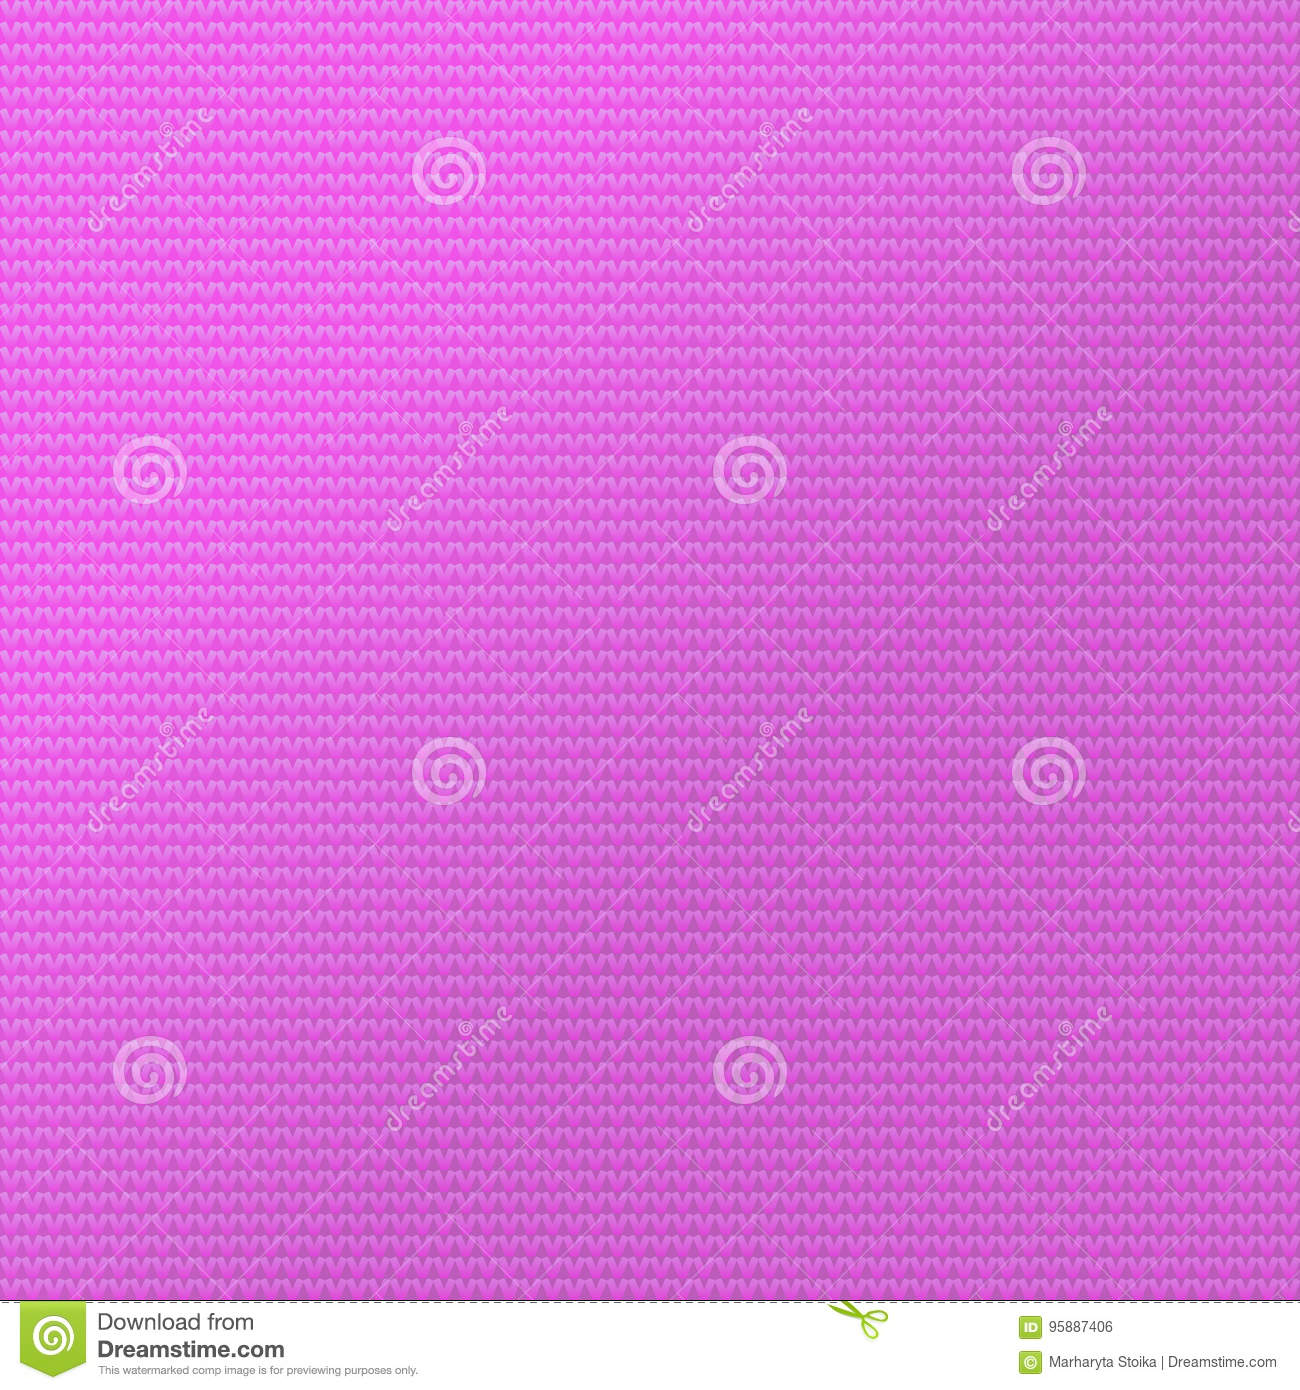 Knit Pattern Background. Sweater Fabric Pink Color. Stock Vector ...